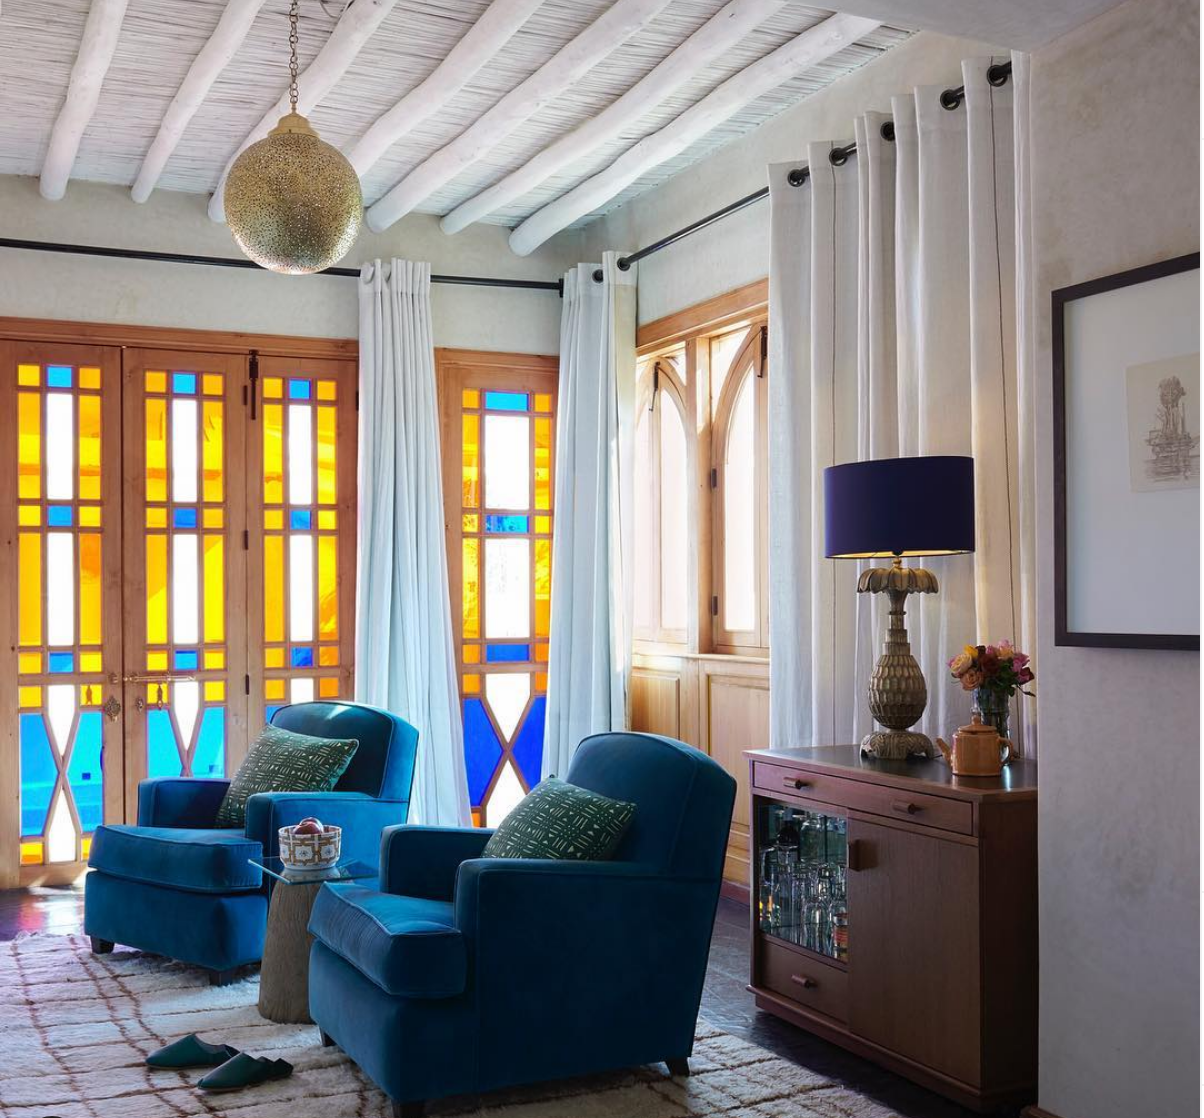 the interior design retreat in El Fenn Marrakech is a great opportunity to source interior design inspiration . click through to book